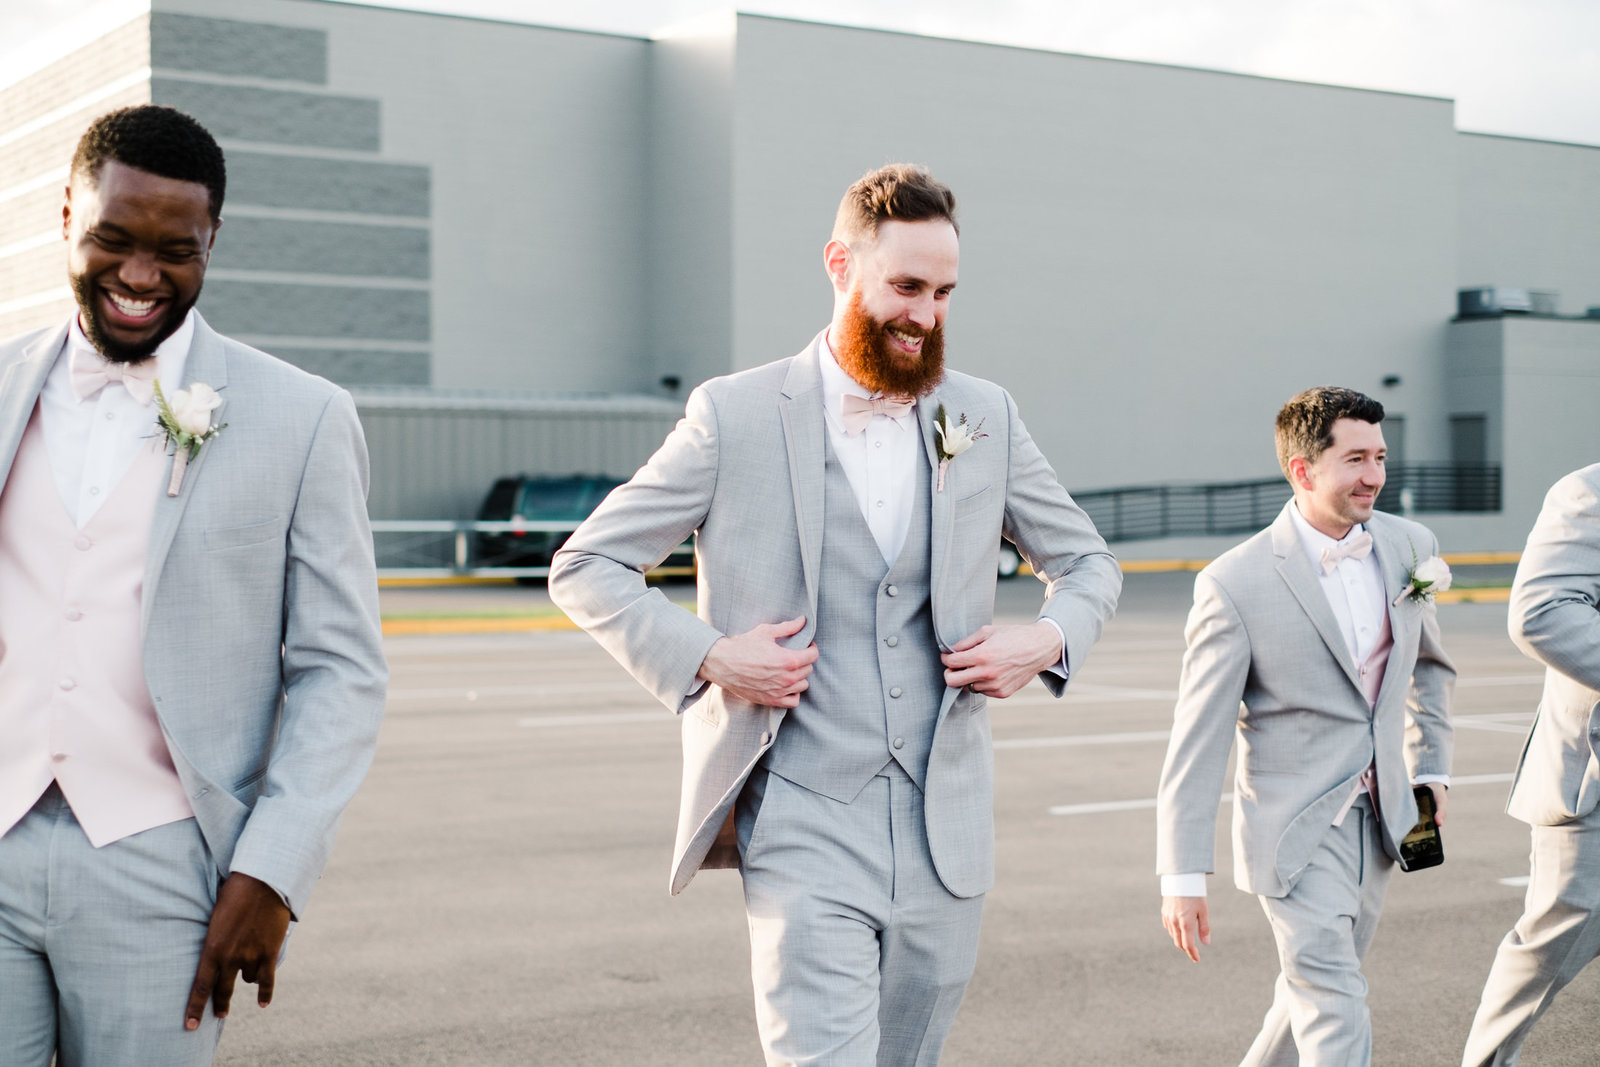 Groom and groomsmen walking together and laughing at wedding in Orlando, FL